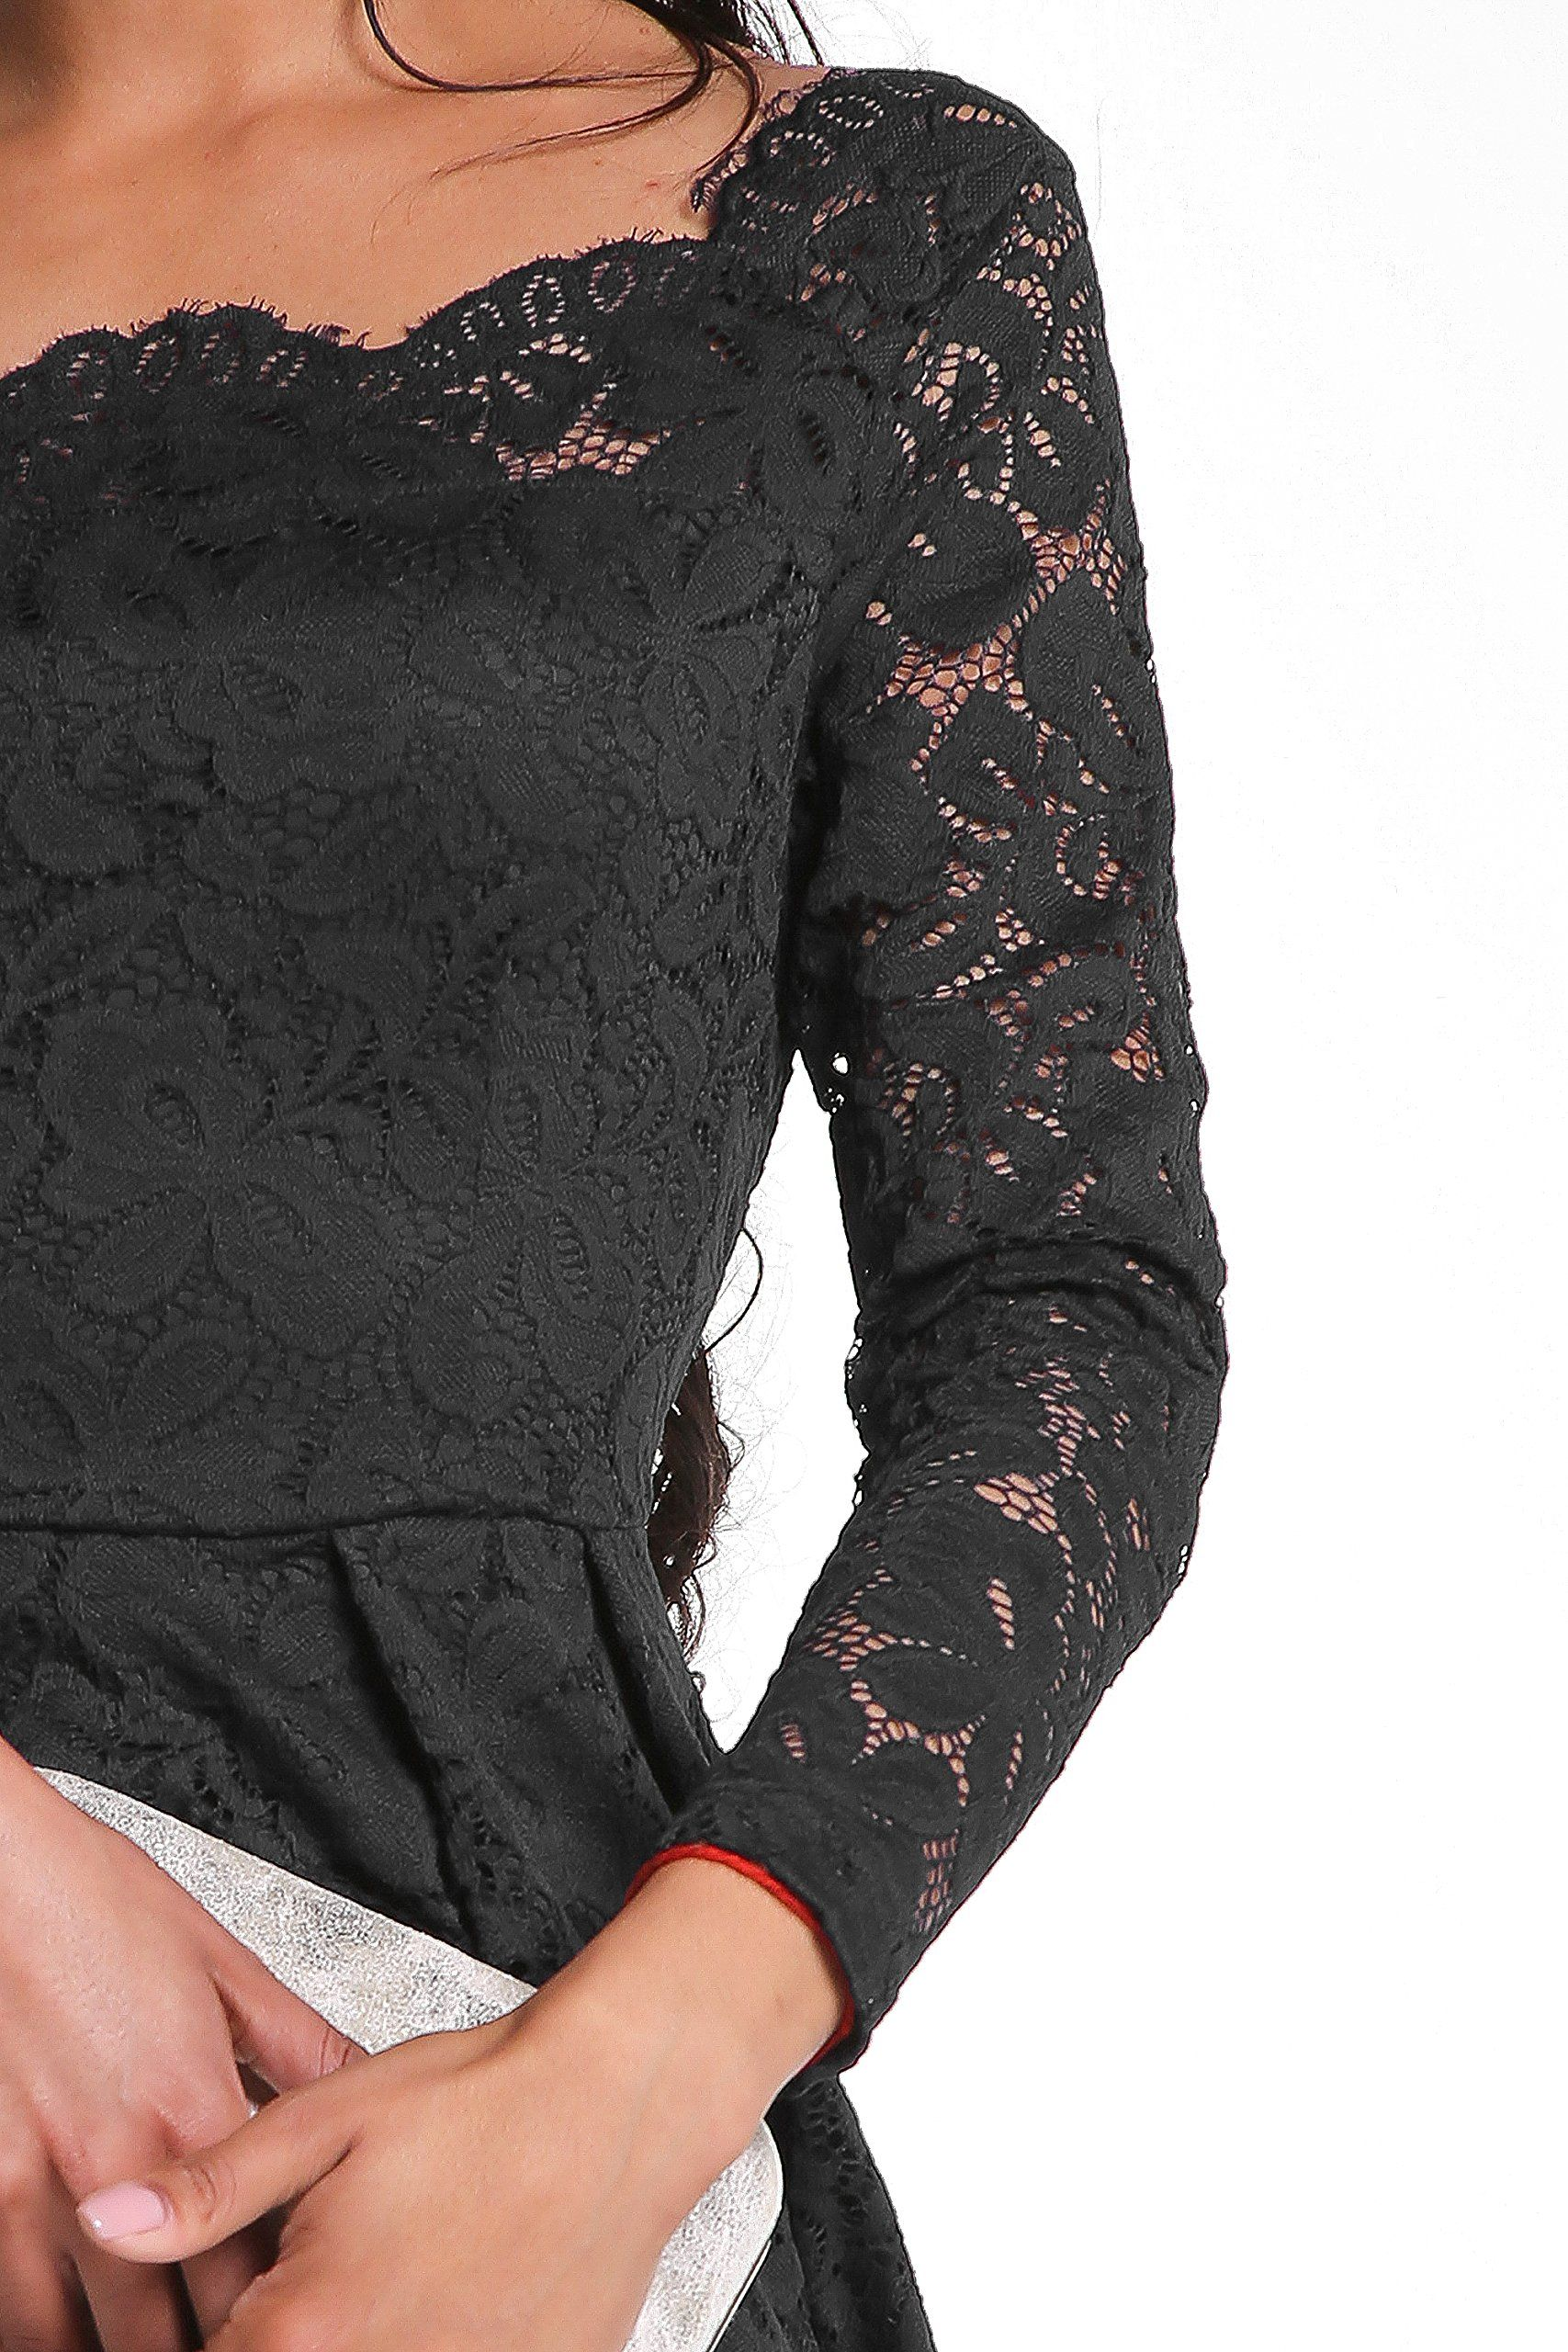 c0728ea2260 ANETTE Womens Vintage Long Sleeve Boat Neck Floral Lace Semi Formal  Cocktail Swing Dresses Black Large     Learn more by visiting the image  link.